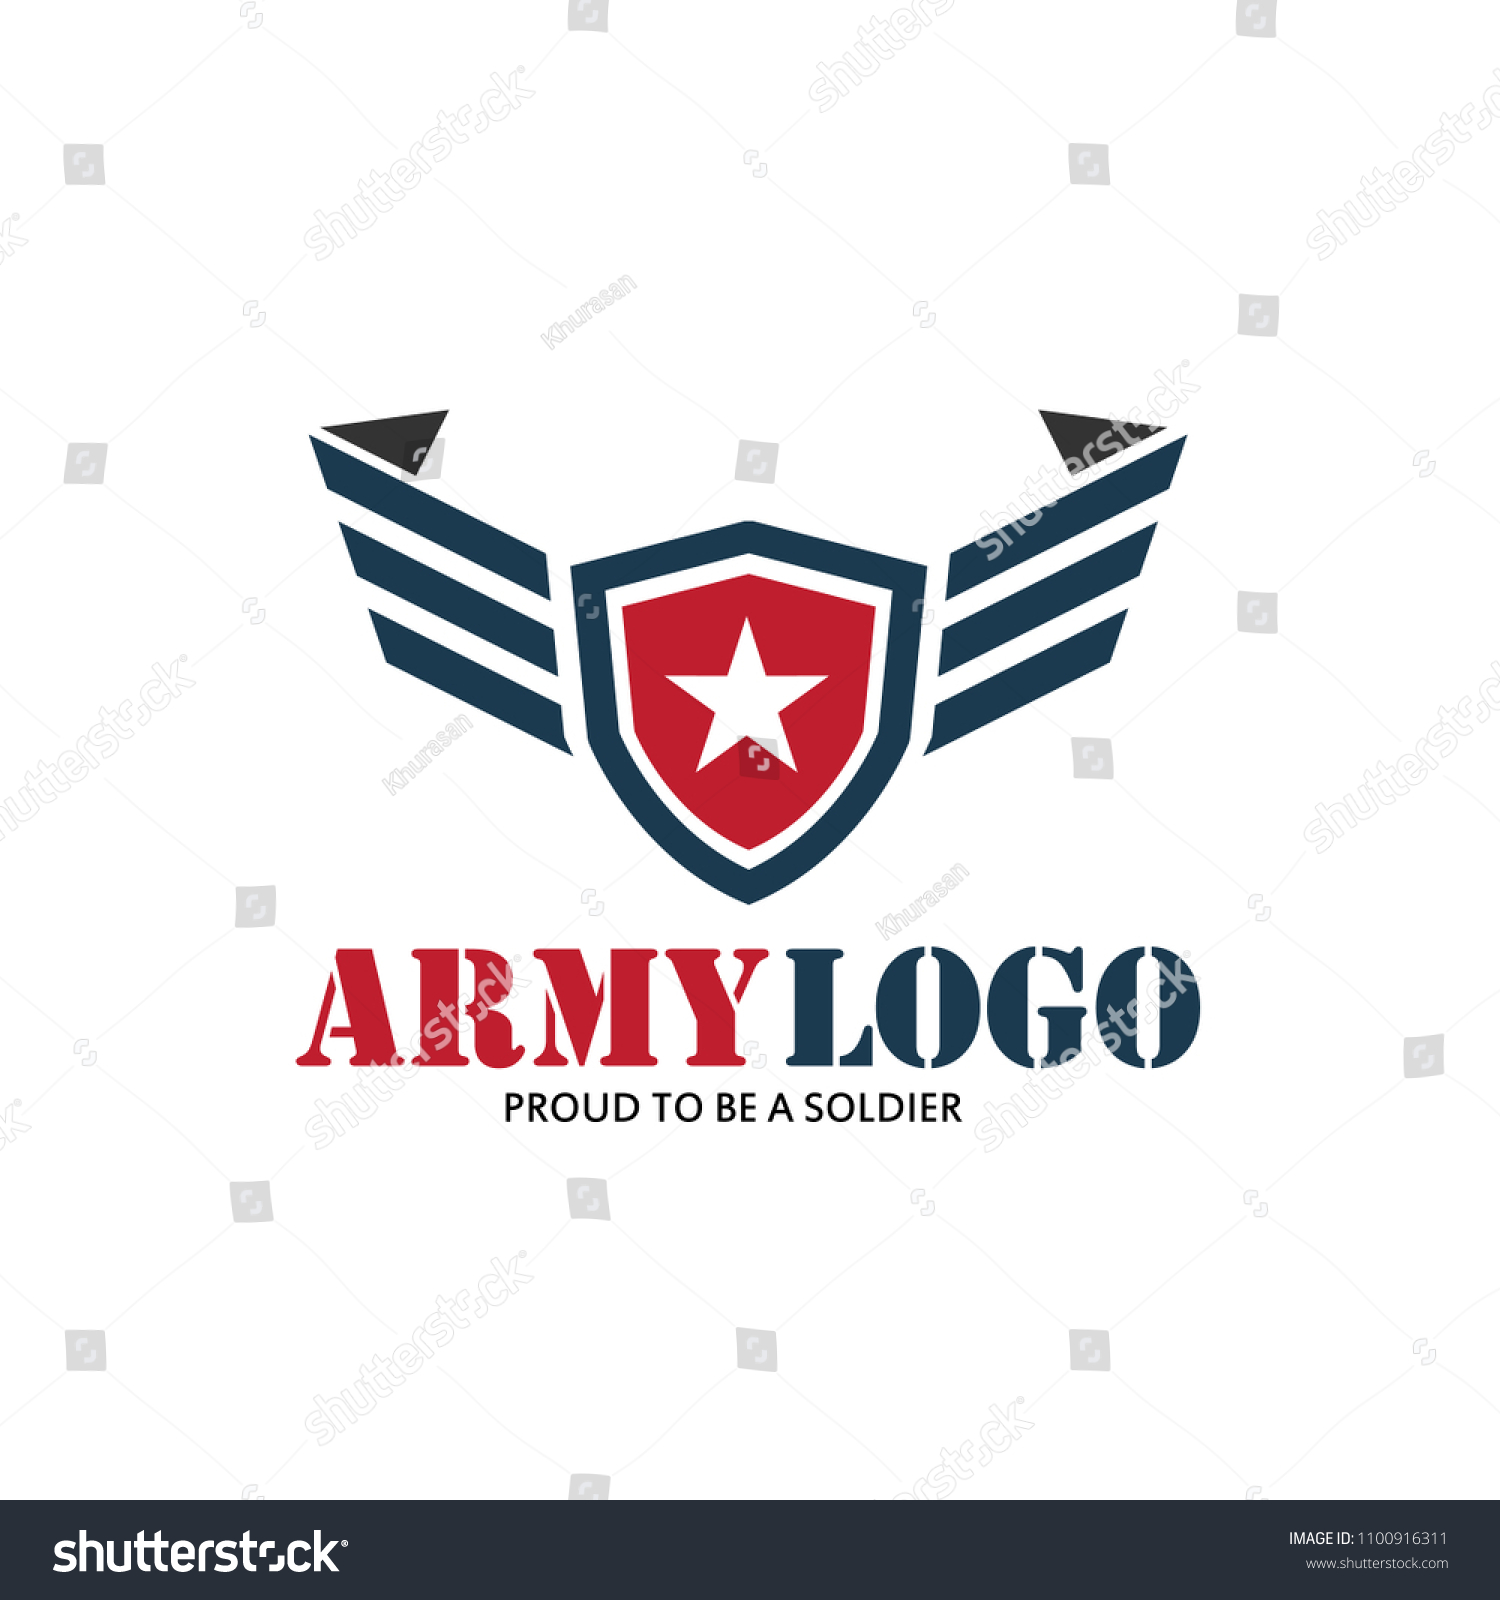 bceaac3aa Stock vector patriot army logo with military star wing modern logo vector  illustration jpg 1500x1600 Patriot